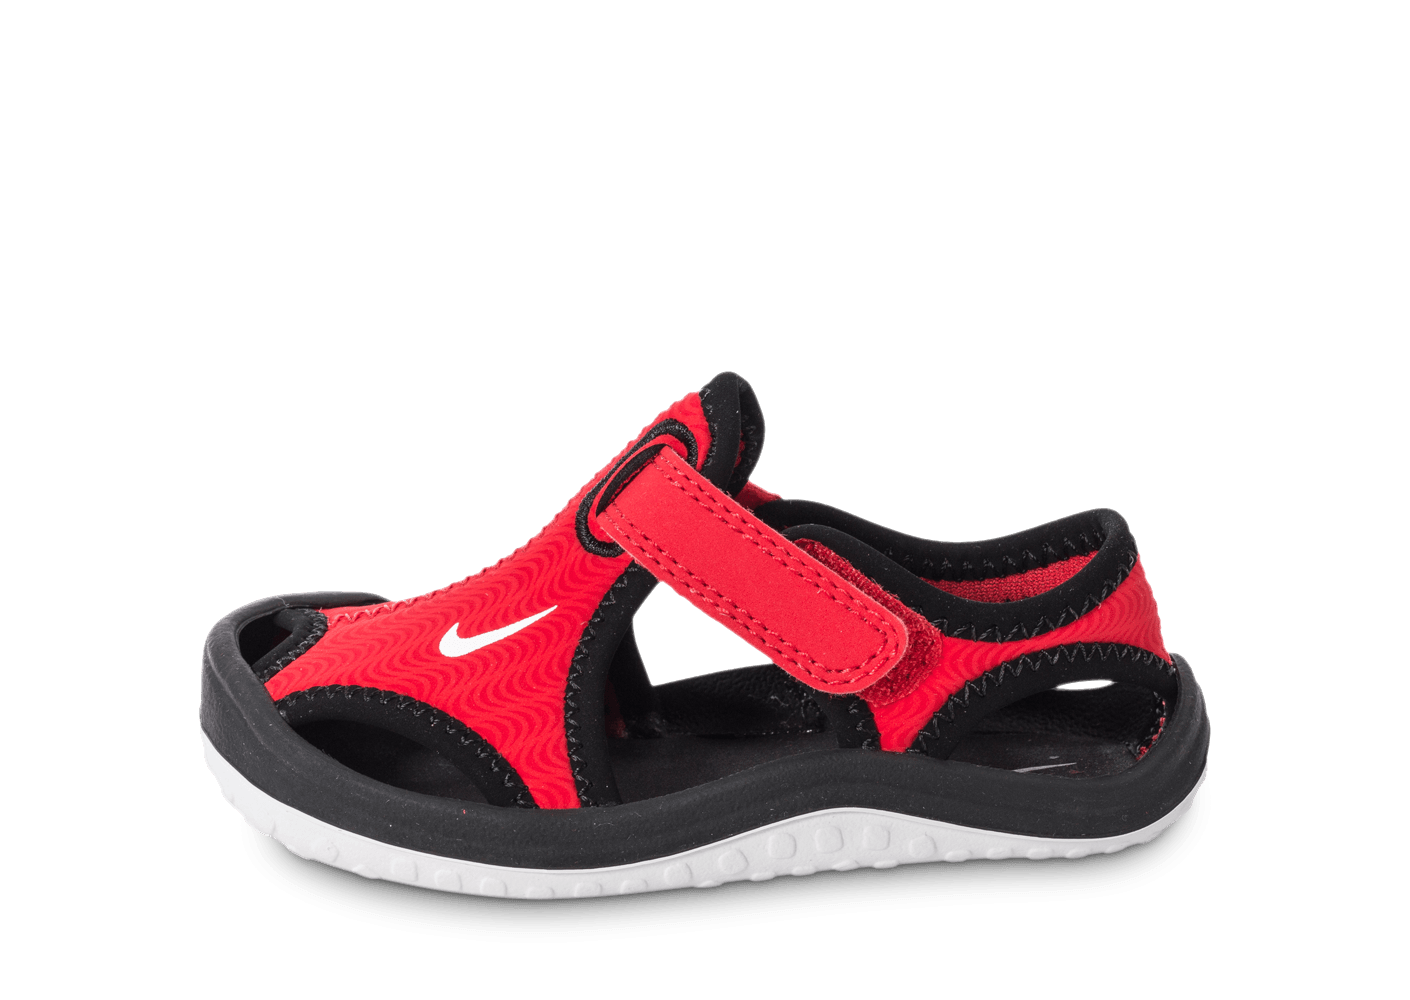 new concept 5c141 0a98f Nike Sunray Protect Bébé rouge - Chaussures Chaussures - Chausport